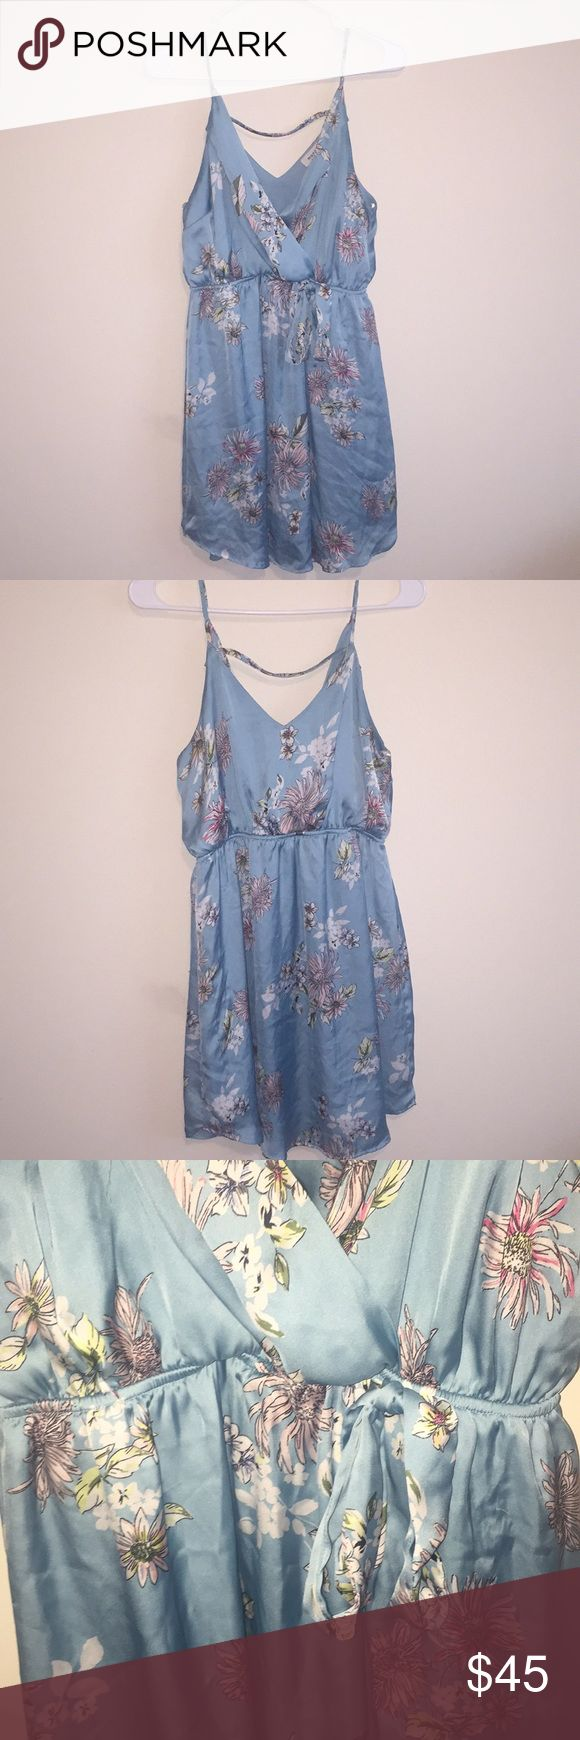 Baby blue floral silk dress Great piece to dress up with heels or down with sandals Dresses Mini